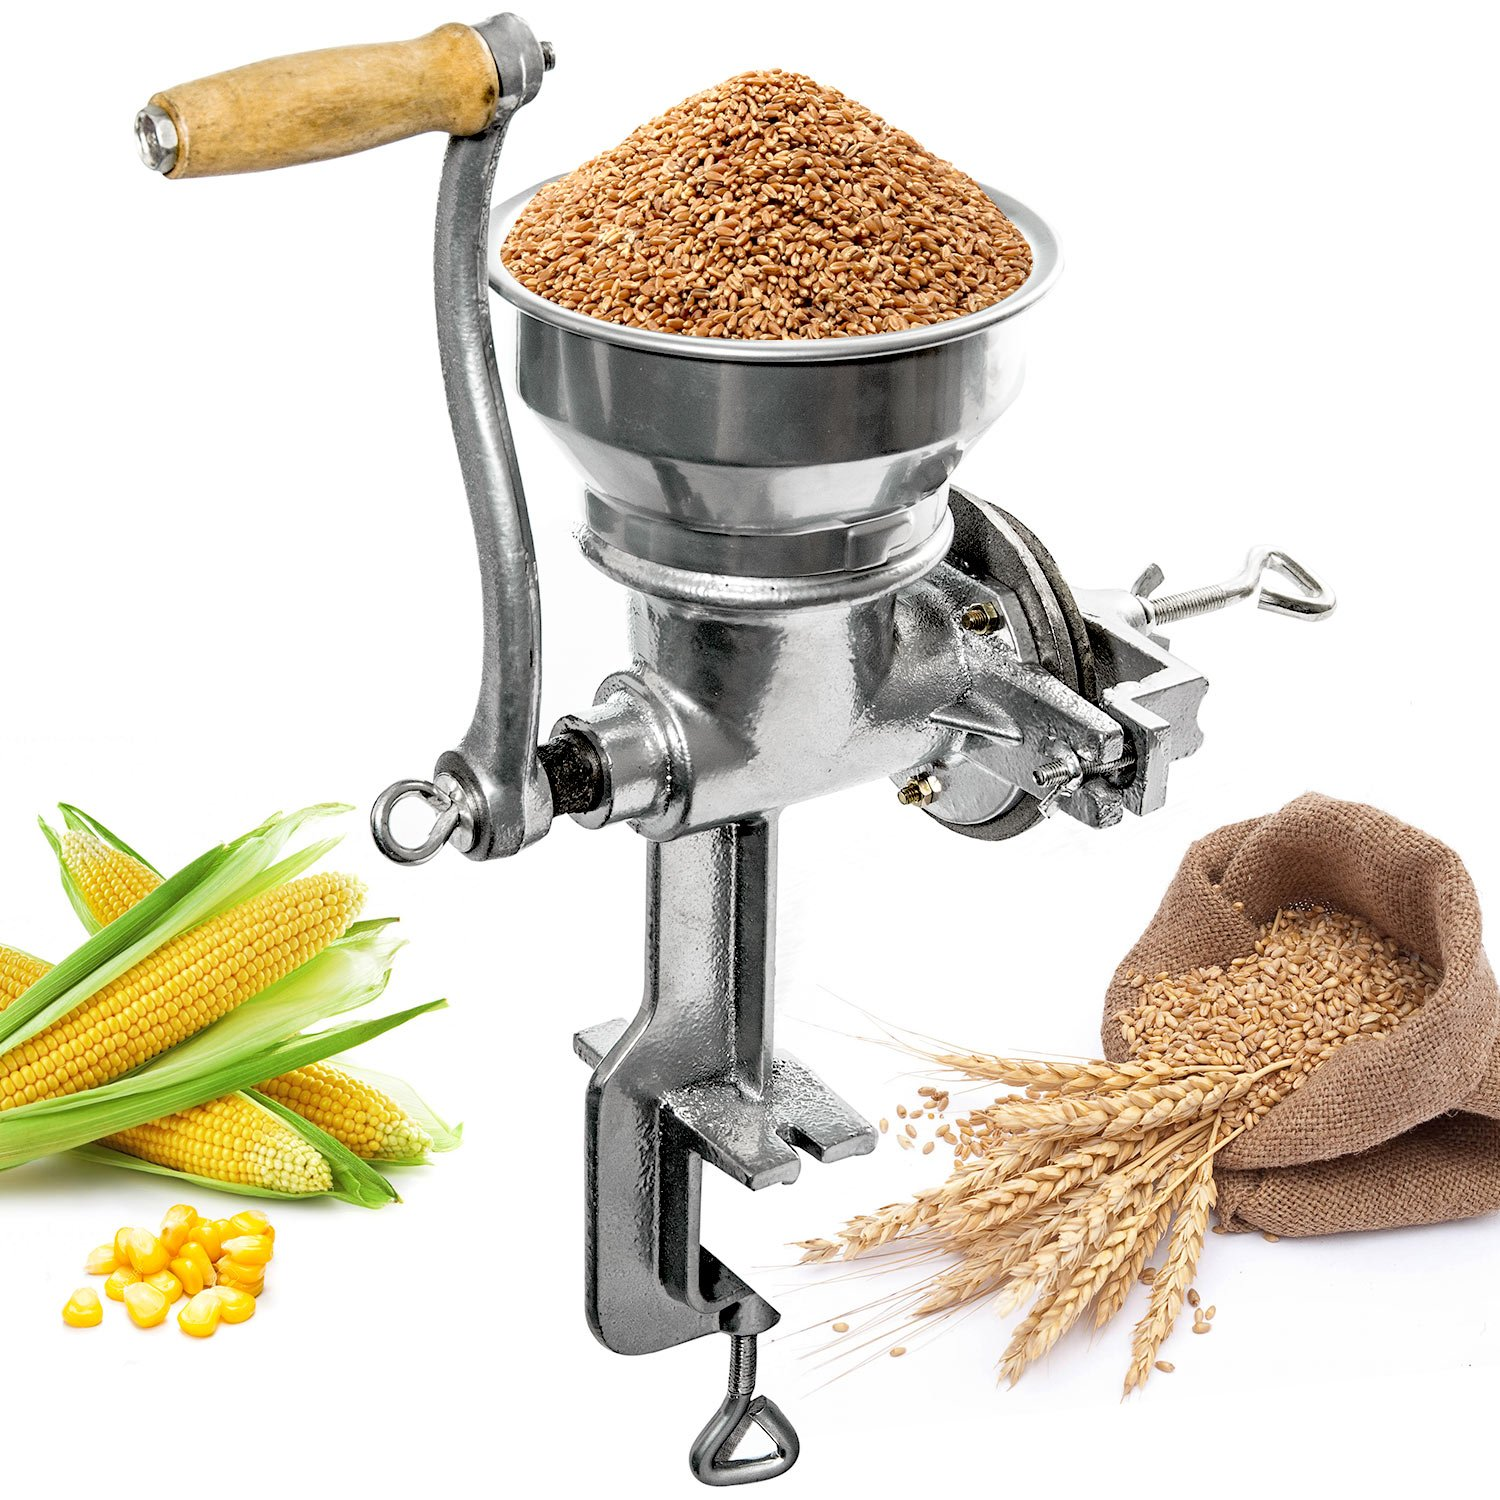 Professional Manual Grain Grinder - Table Clamp Corn Mill with Hopper, Cast Iron KapscoMoto